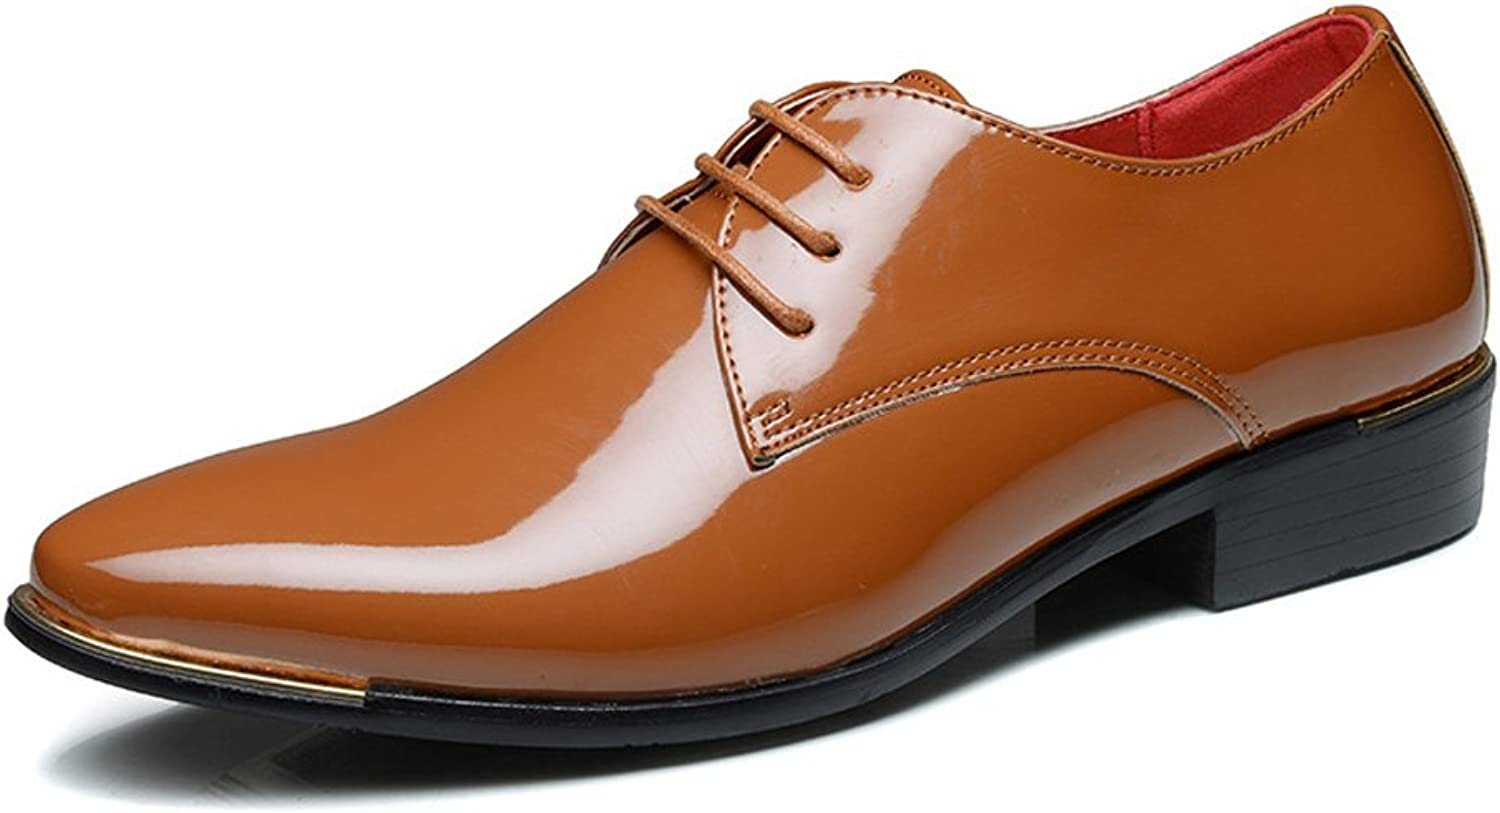 SCSY-Oxford shoes Simple Men's Formal Oxfords PU Patent Leather Low Block Heel Lace Up Loafer shoes Large Size